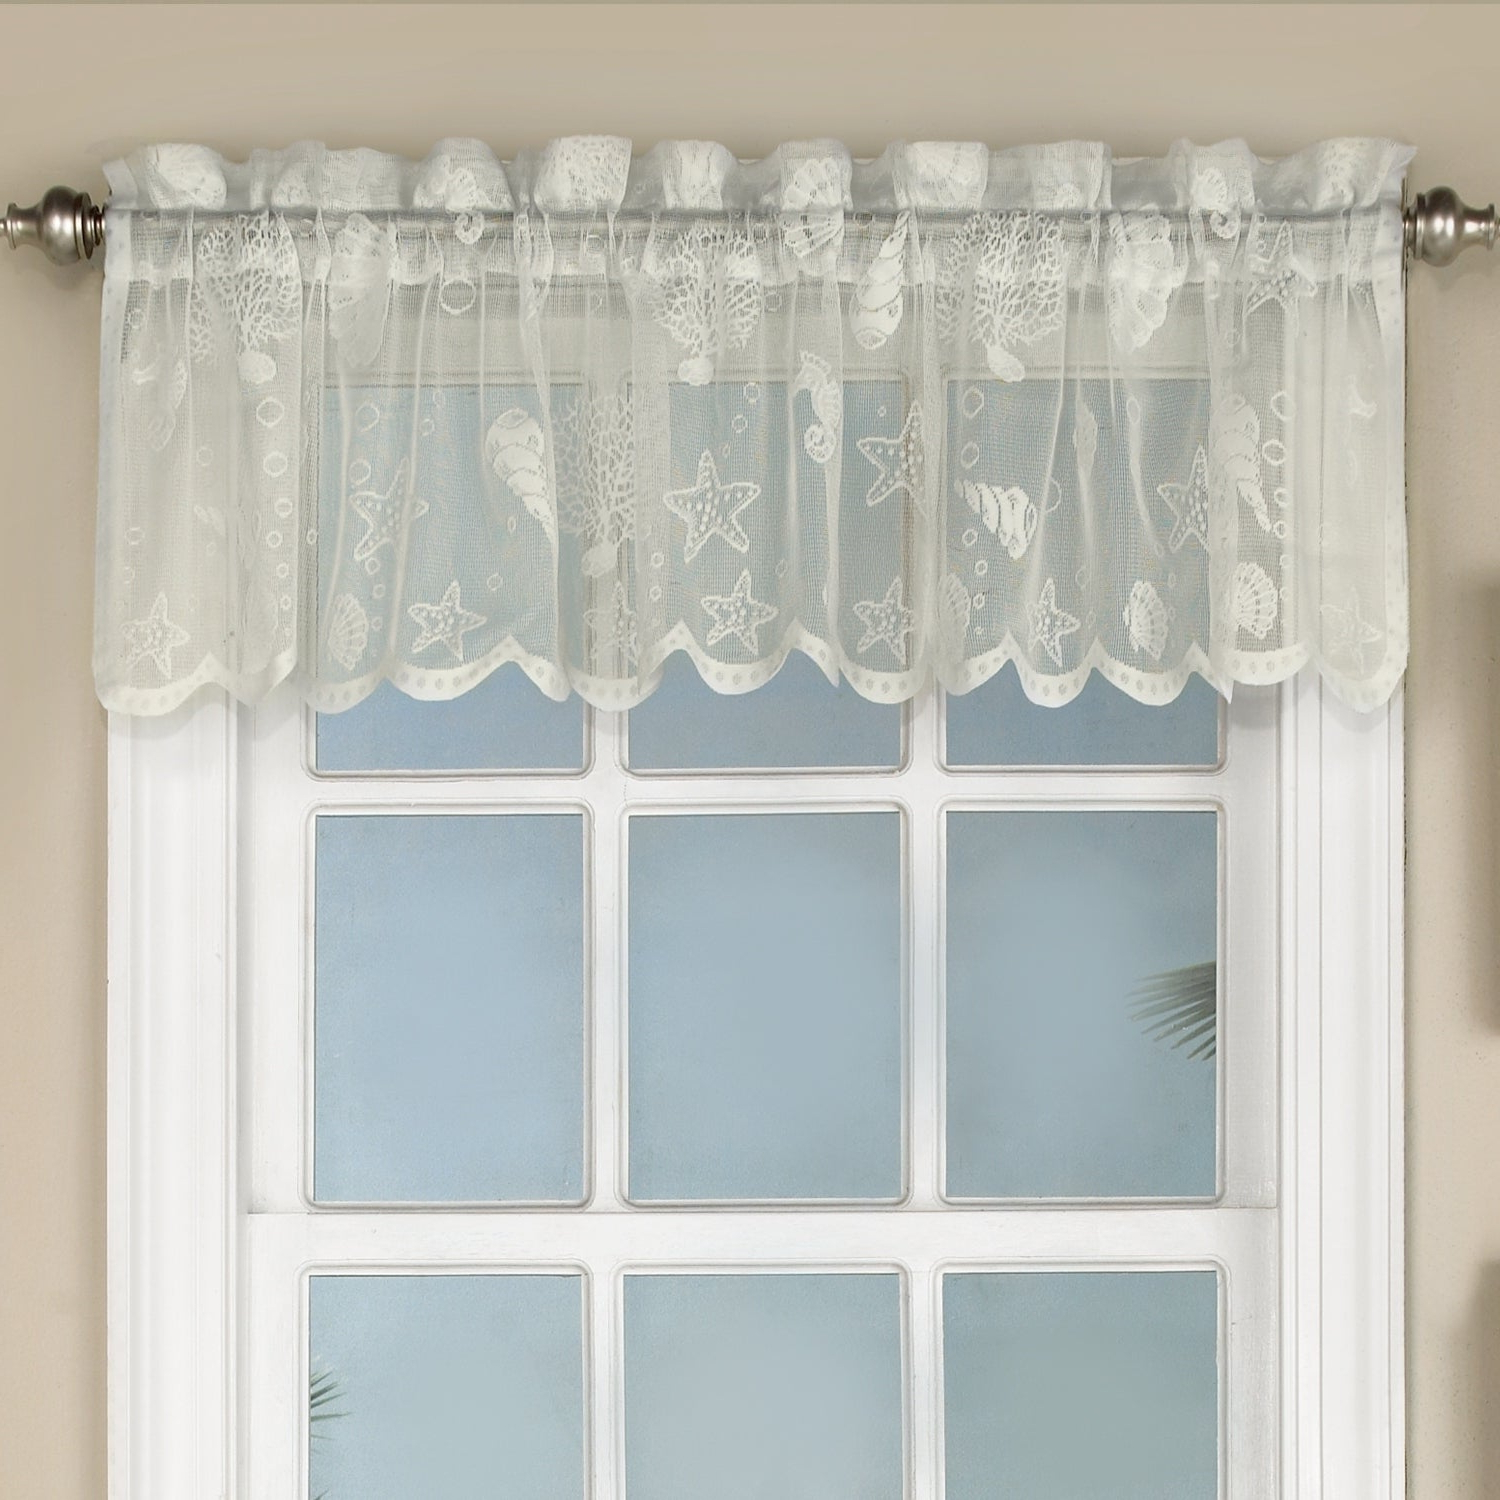 Marine Life Motif Knitted Lace Window Curtain Pieces With Favorite Marine Life Motif Knitted Lace Window Curtain Pieces (Gallery 3 of 20)